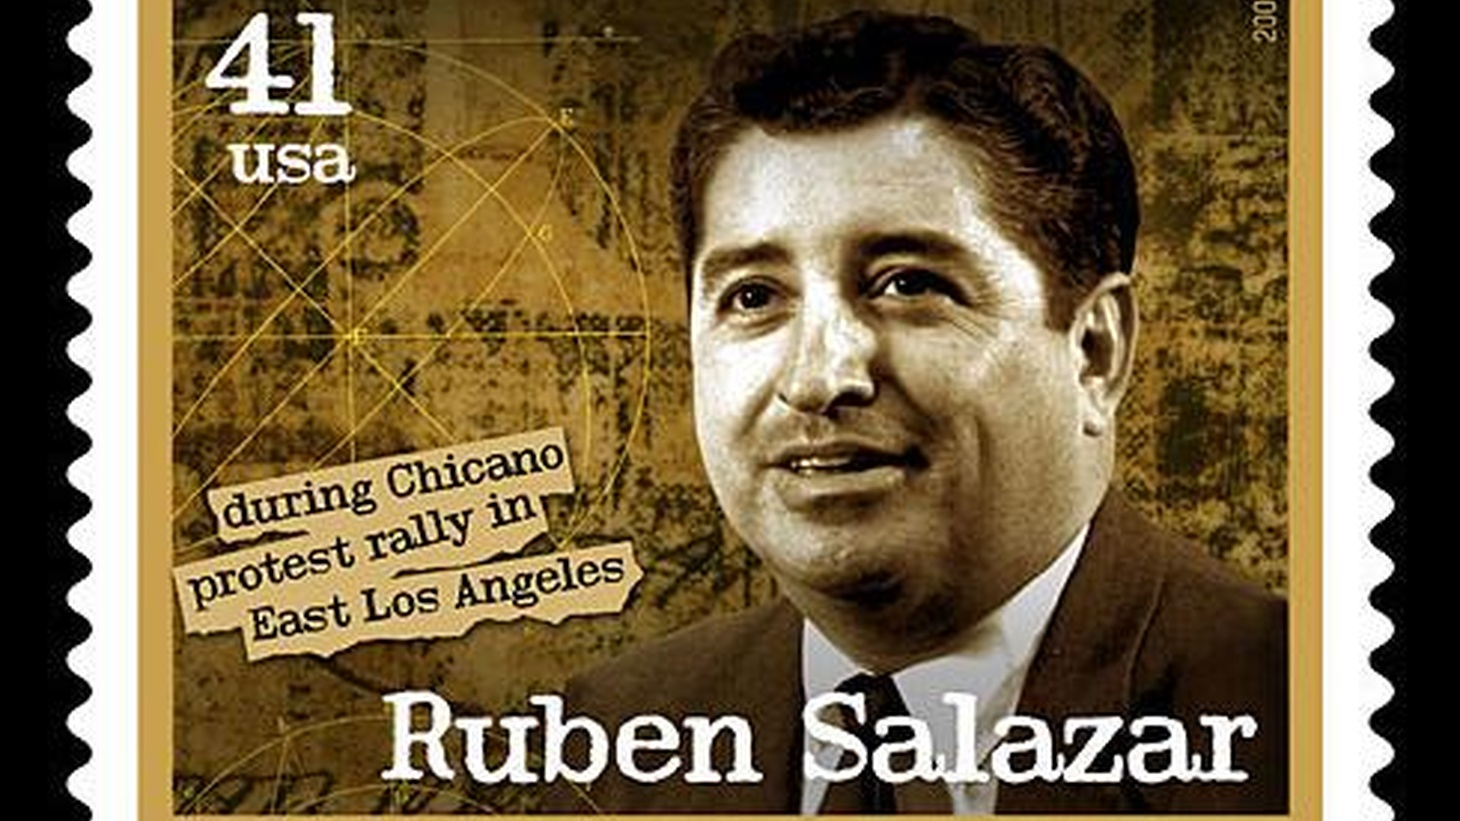 It's not common at all for a journalist in Los Angeles working on a politically sensitive story to be shot dead by a law enforcement officer, under mysterious circumstances. In fact, it's almost unheard of. But that's what happened 40 years ago Sunday along Whittier Boulevard in East Los Angeles. And questions about how and why it happened still linger...